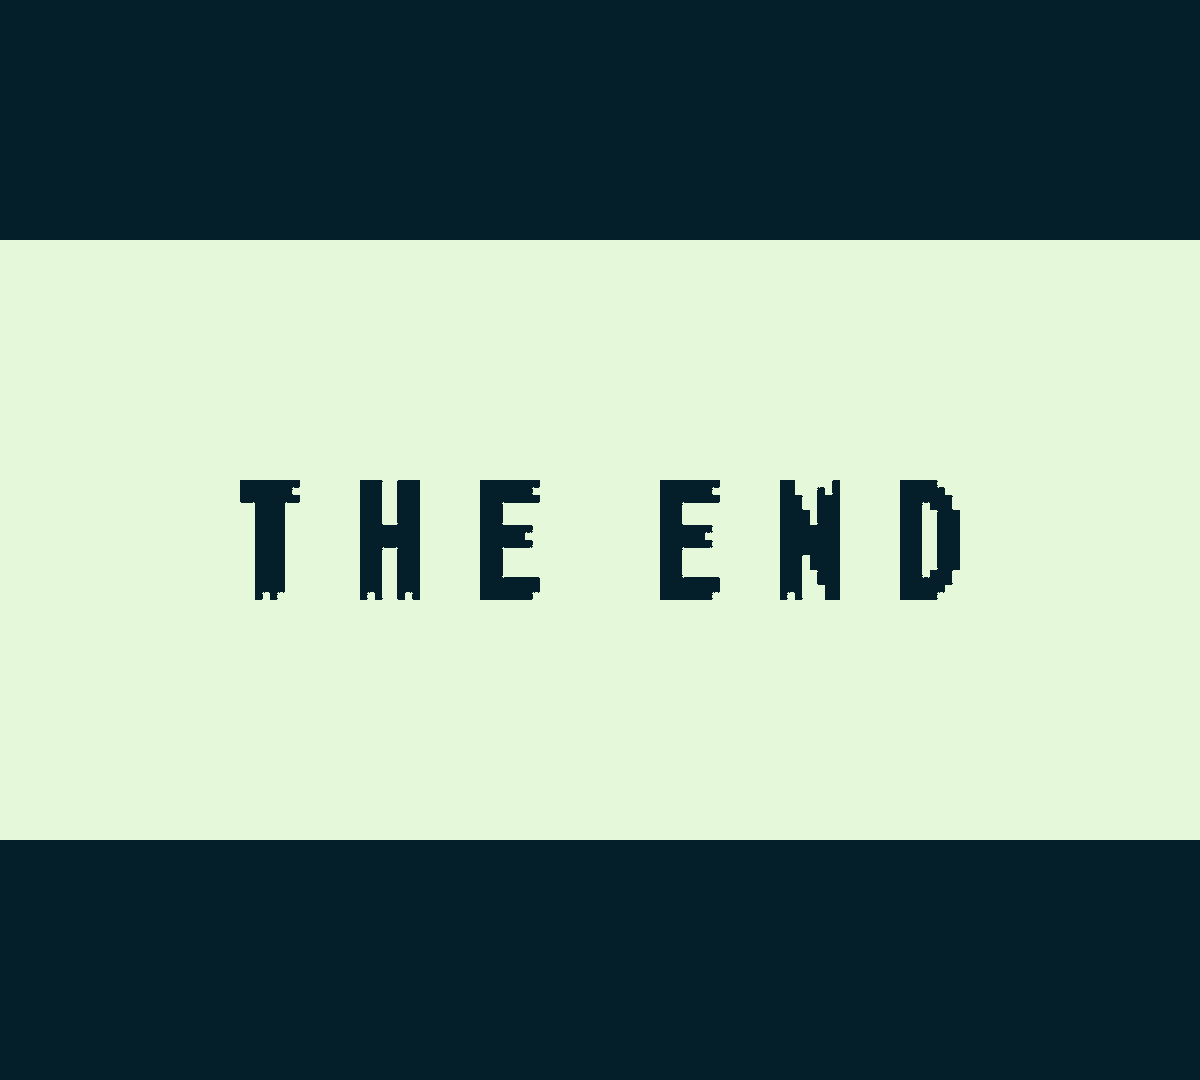 We are now six weeks later and I think it is time to say goodbye. This experiment was the craziest thing I have ever made and this would not have been possible without each and every one of you. Thanks for playing.